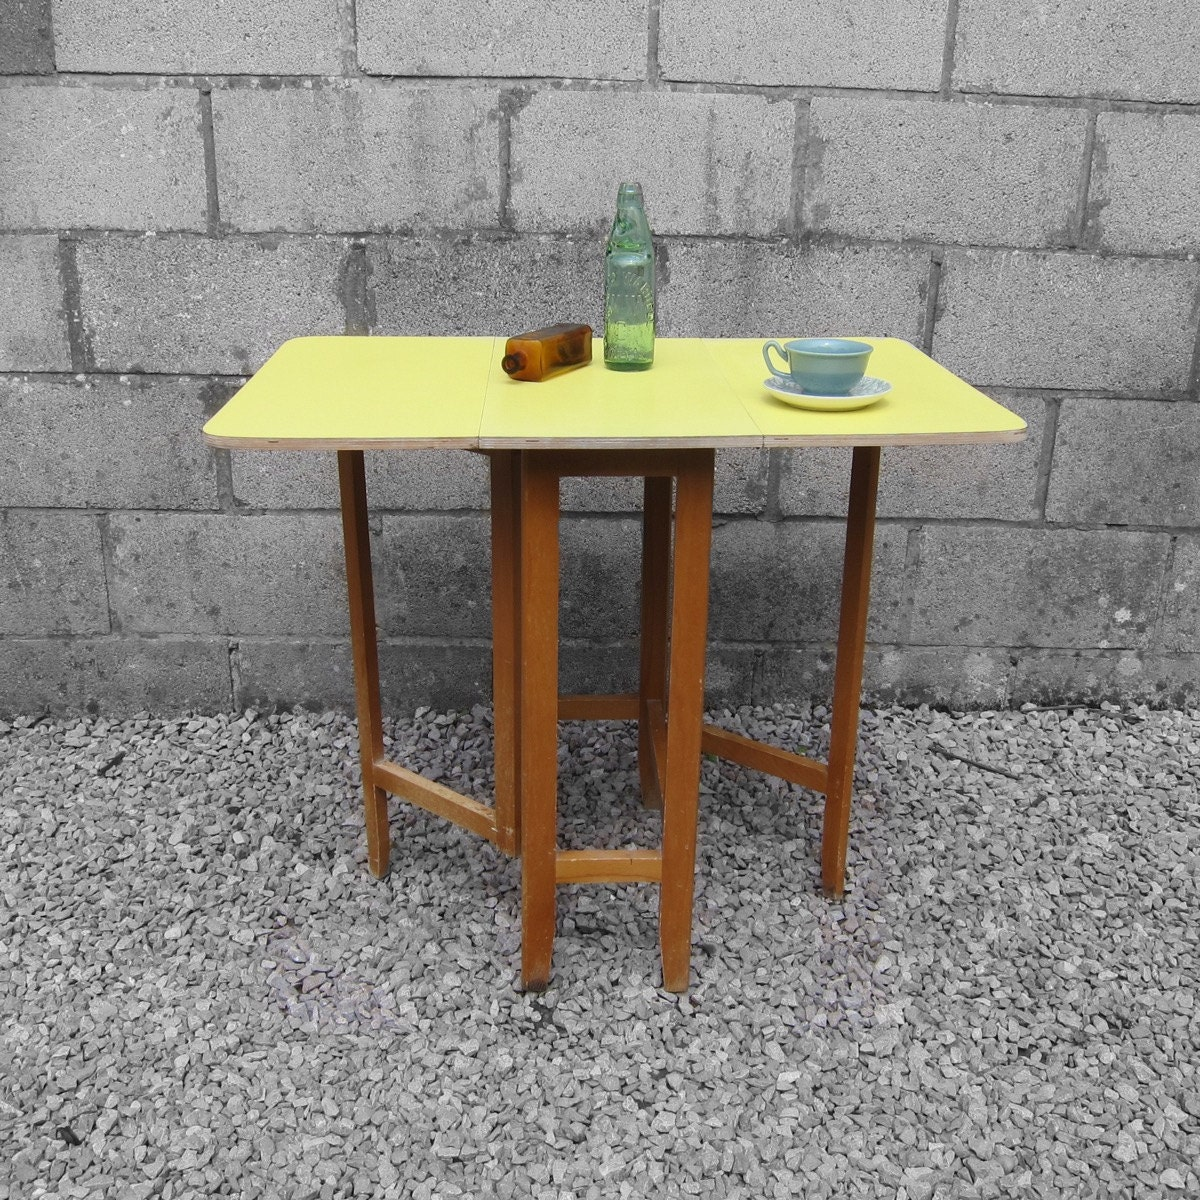 1950s spring yellow melamine formica folding small kitchen ding table